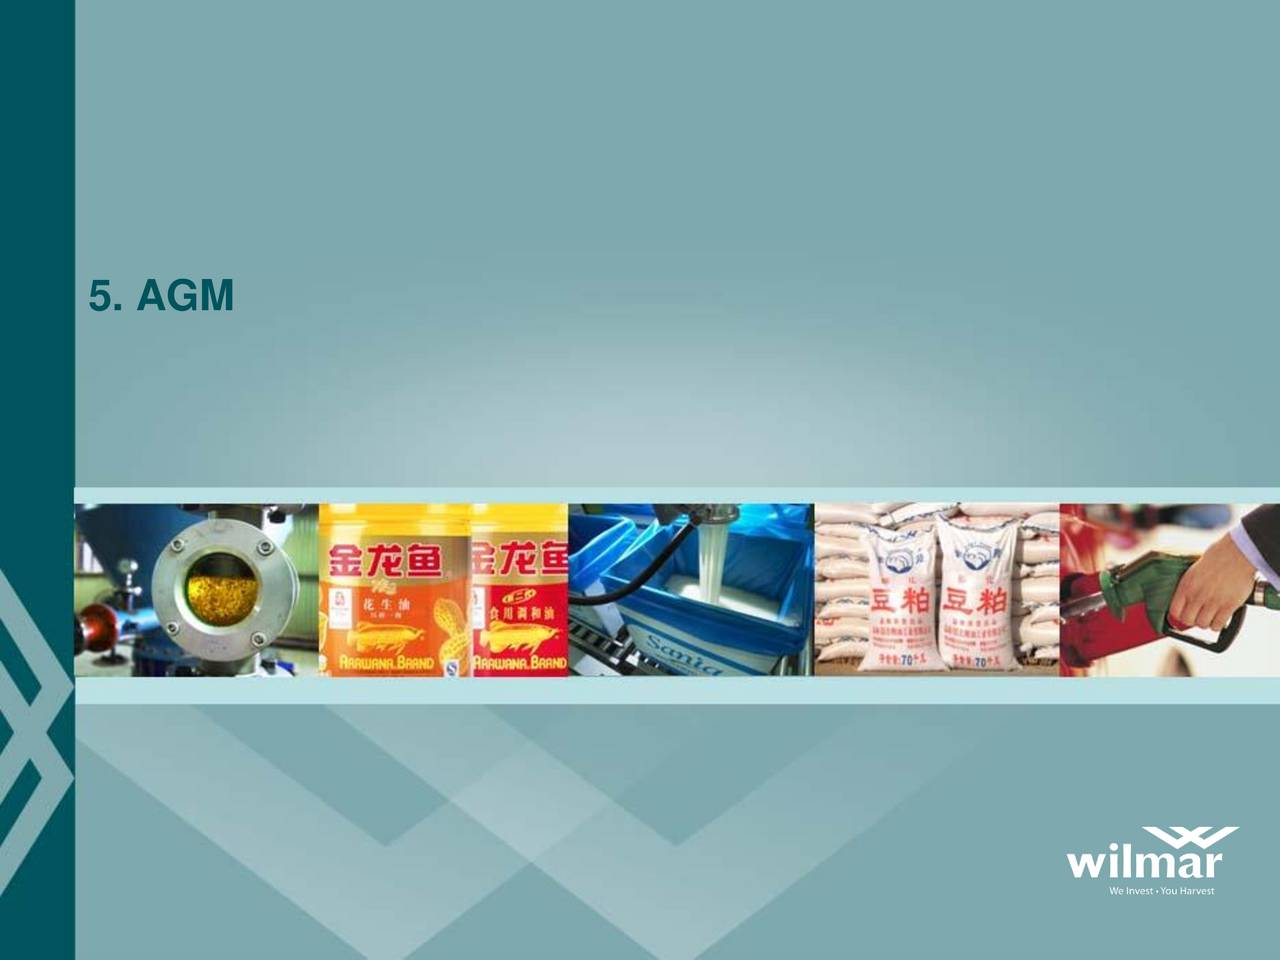 adani wilmar limited project report A project report on britannia industries ltd international management a project report on britannia industries ltd submitted to dr aksengupta submitted by, nivedita birdawde mba britannia industries limited is an indian company based in bangalore that is famous for its britannia and tiger brands of biscuit, which are highly recognized throughout the country which was founded in the year 1982.